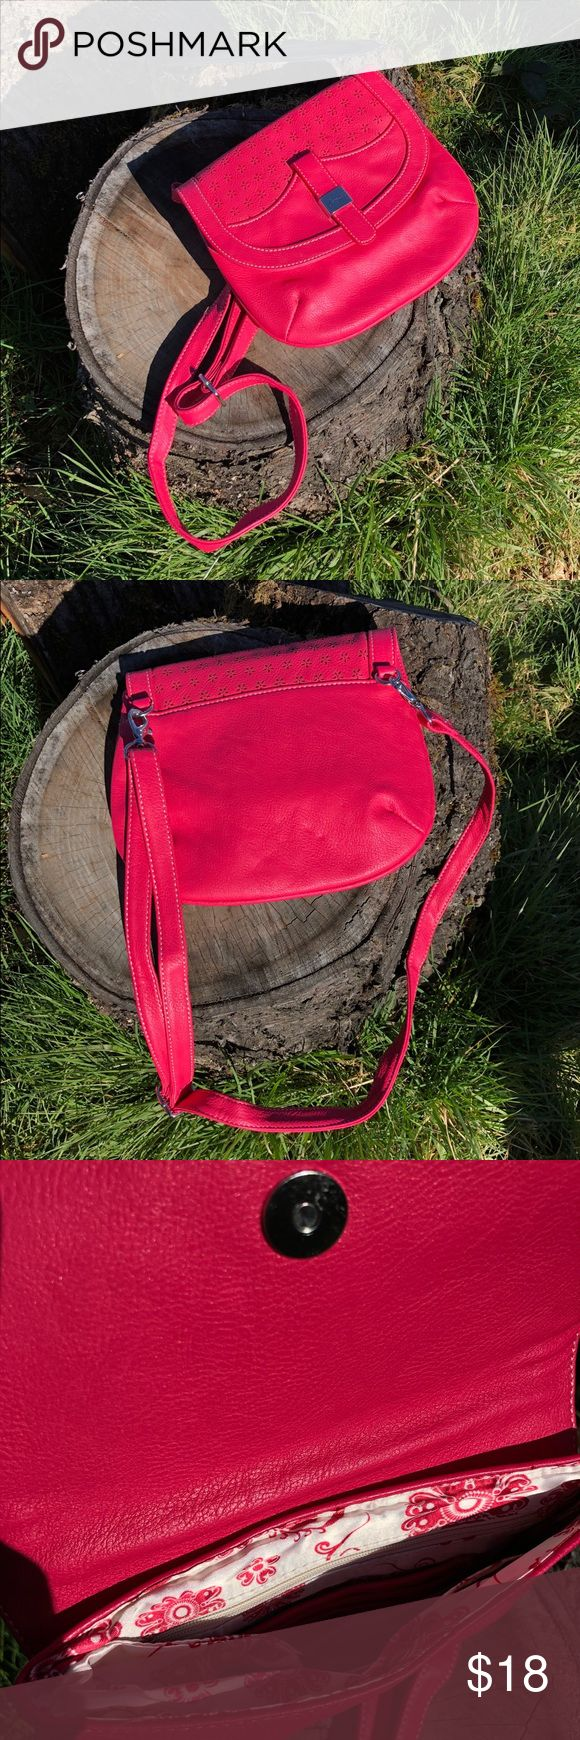 Grace Adele New crossbody purse Finally a sunny day to take pictures outside! 👏🏼👏🏼💐  NWOT Grace Adele hot pink crossbody. This is very cute and trendy little purse. It's in perfect condition since is brand new. Reasonable offer please. Thanks! Grace Adele Bags Crossbody Bags